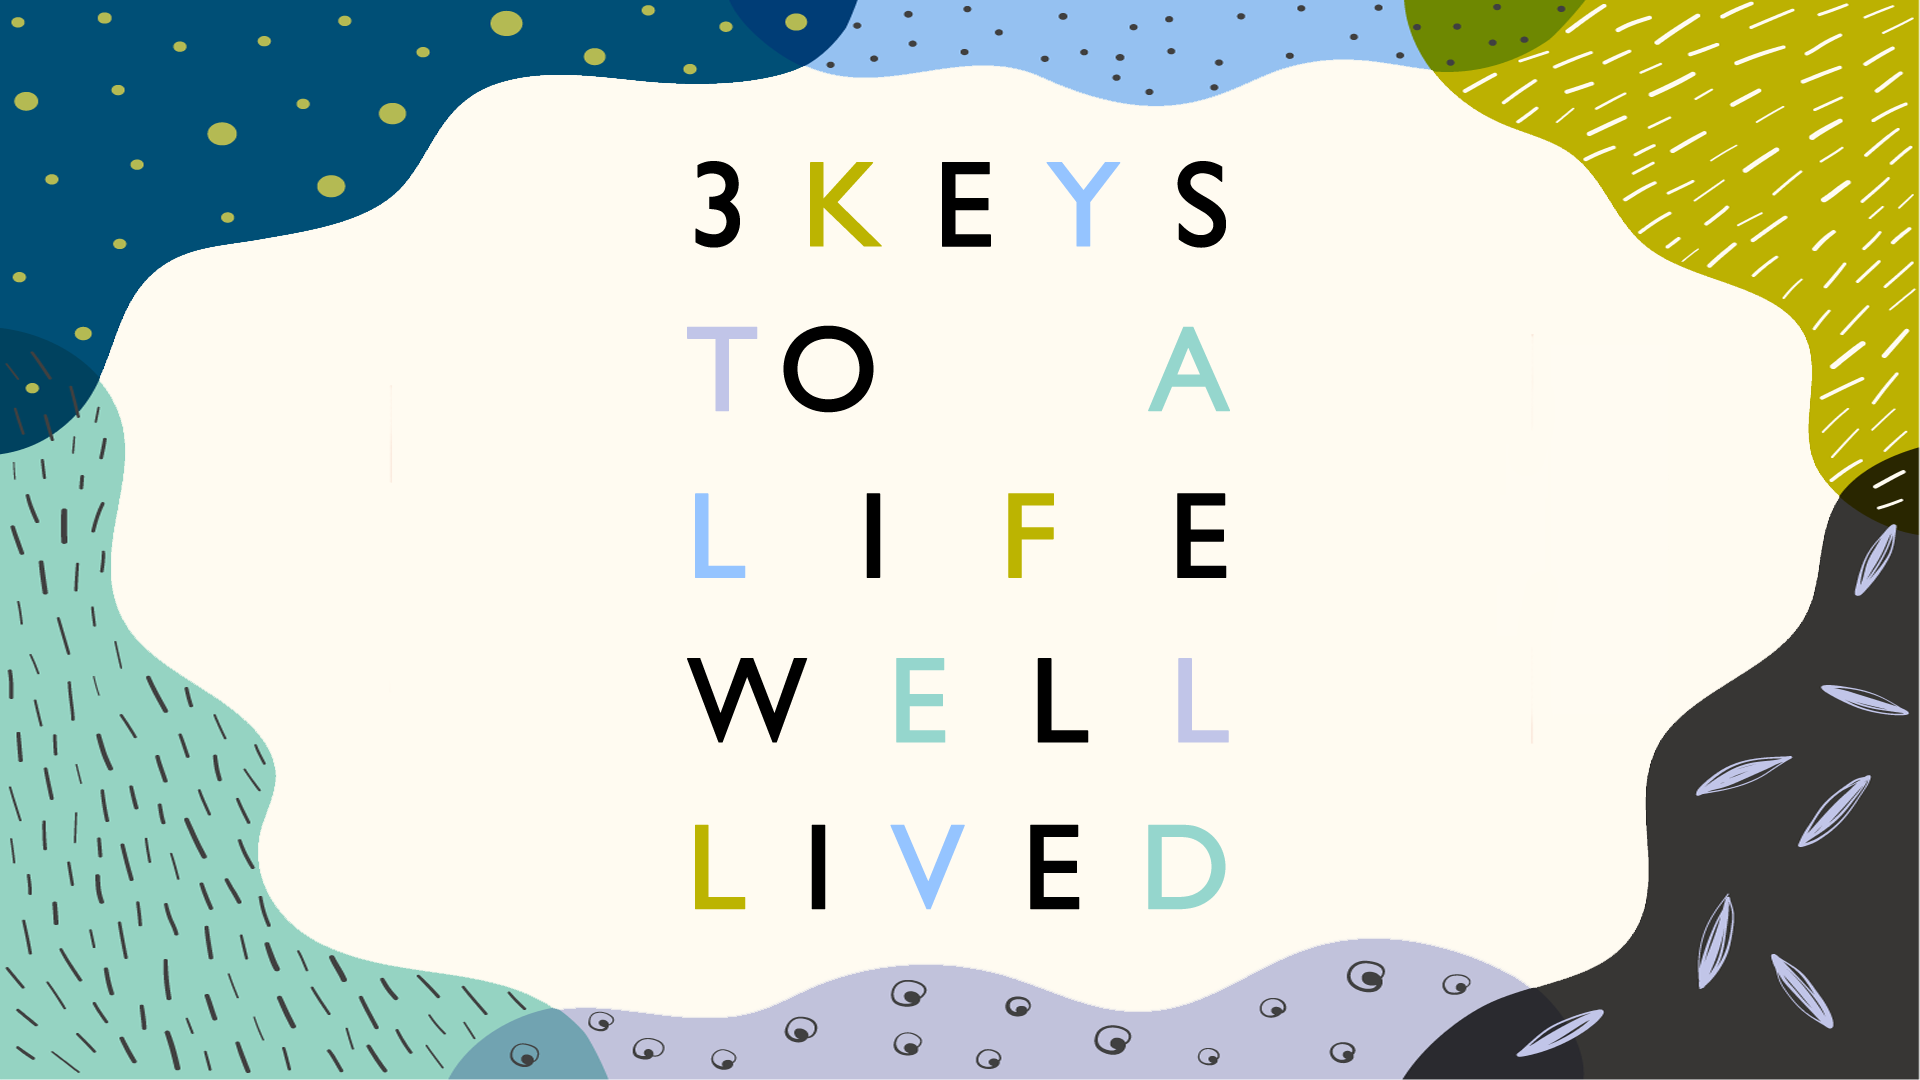 3 keys HD graphic 2.png